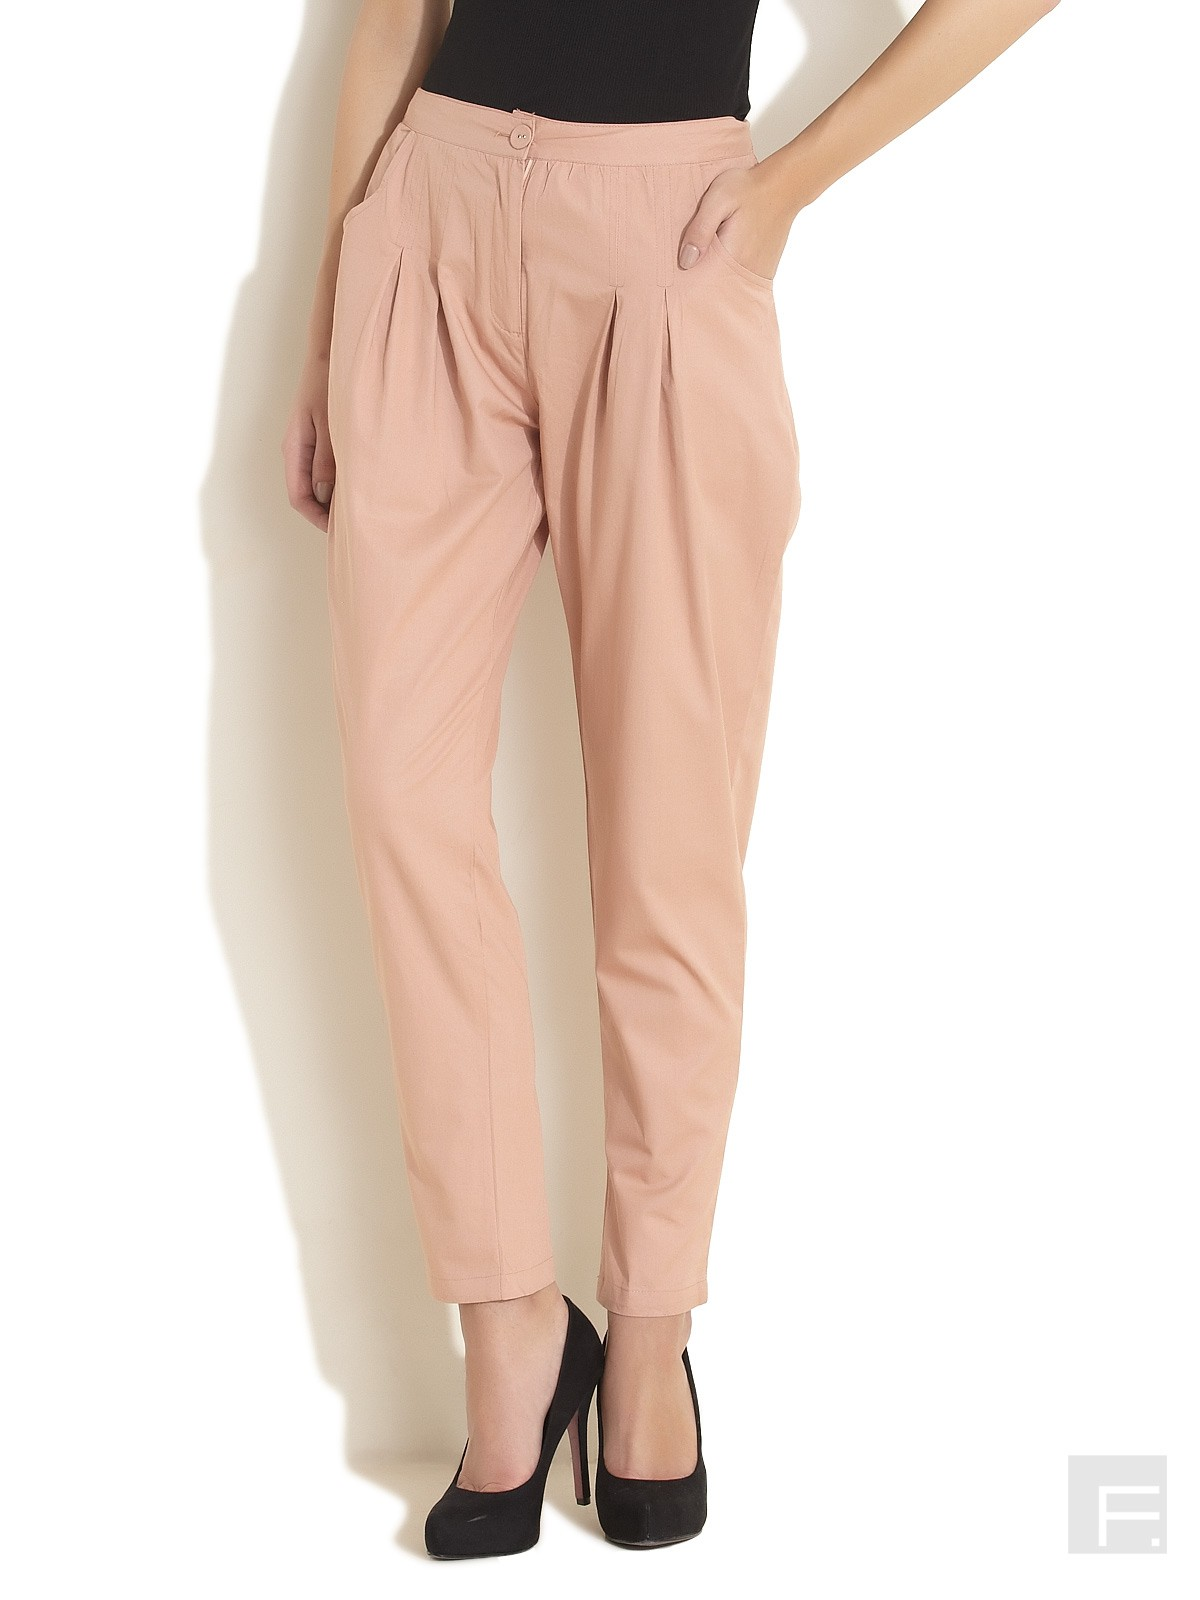 trousers for women: must for each wardrobe wipjgmd